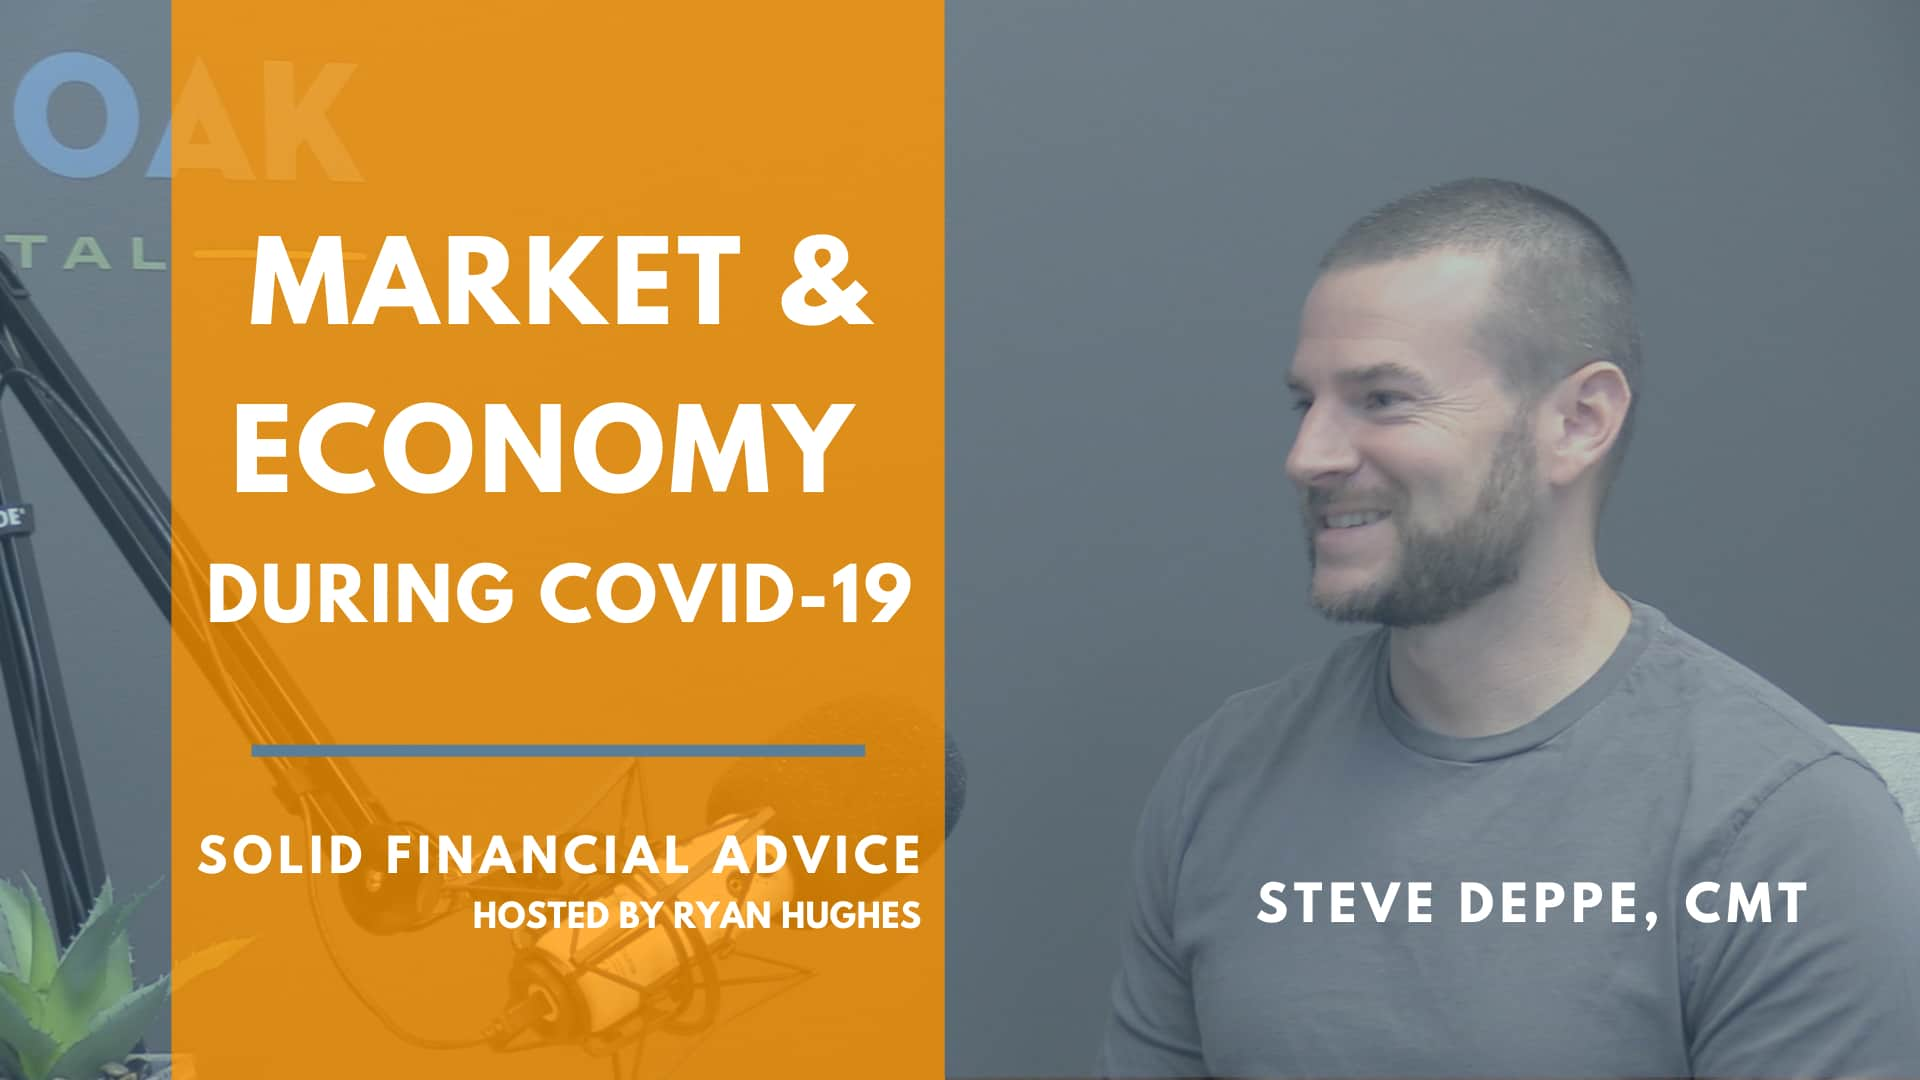 Steve Deppe - Solid Financial Advice